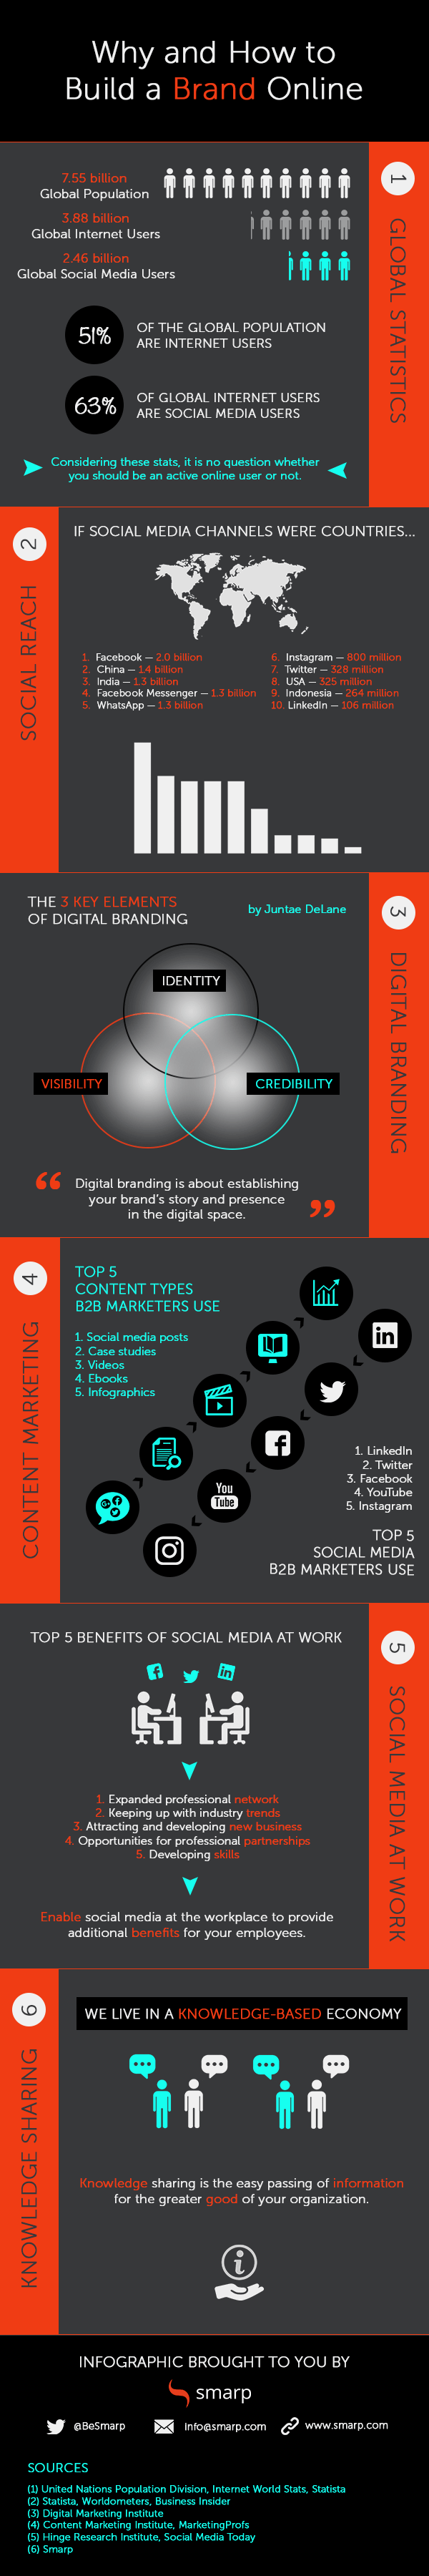 Why and How to Build a Brand Online – Infographic